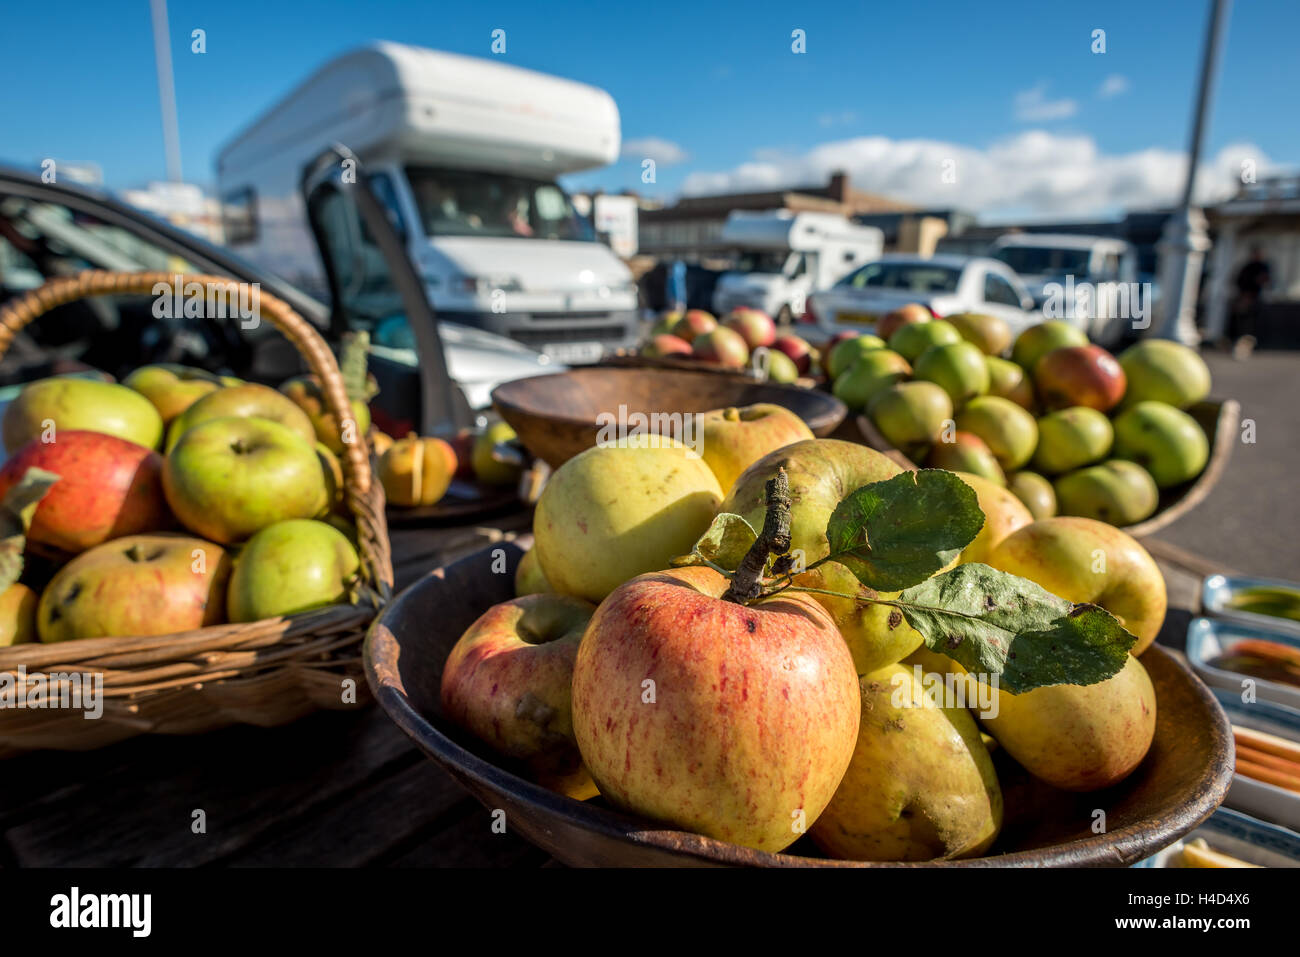 A man selling apples on Brighton seafront. - Stock Image